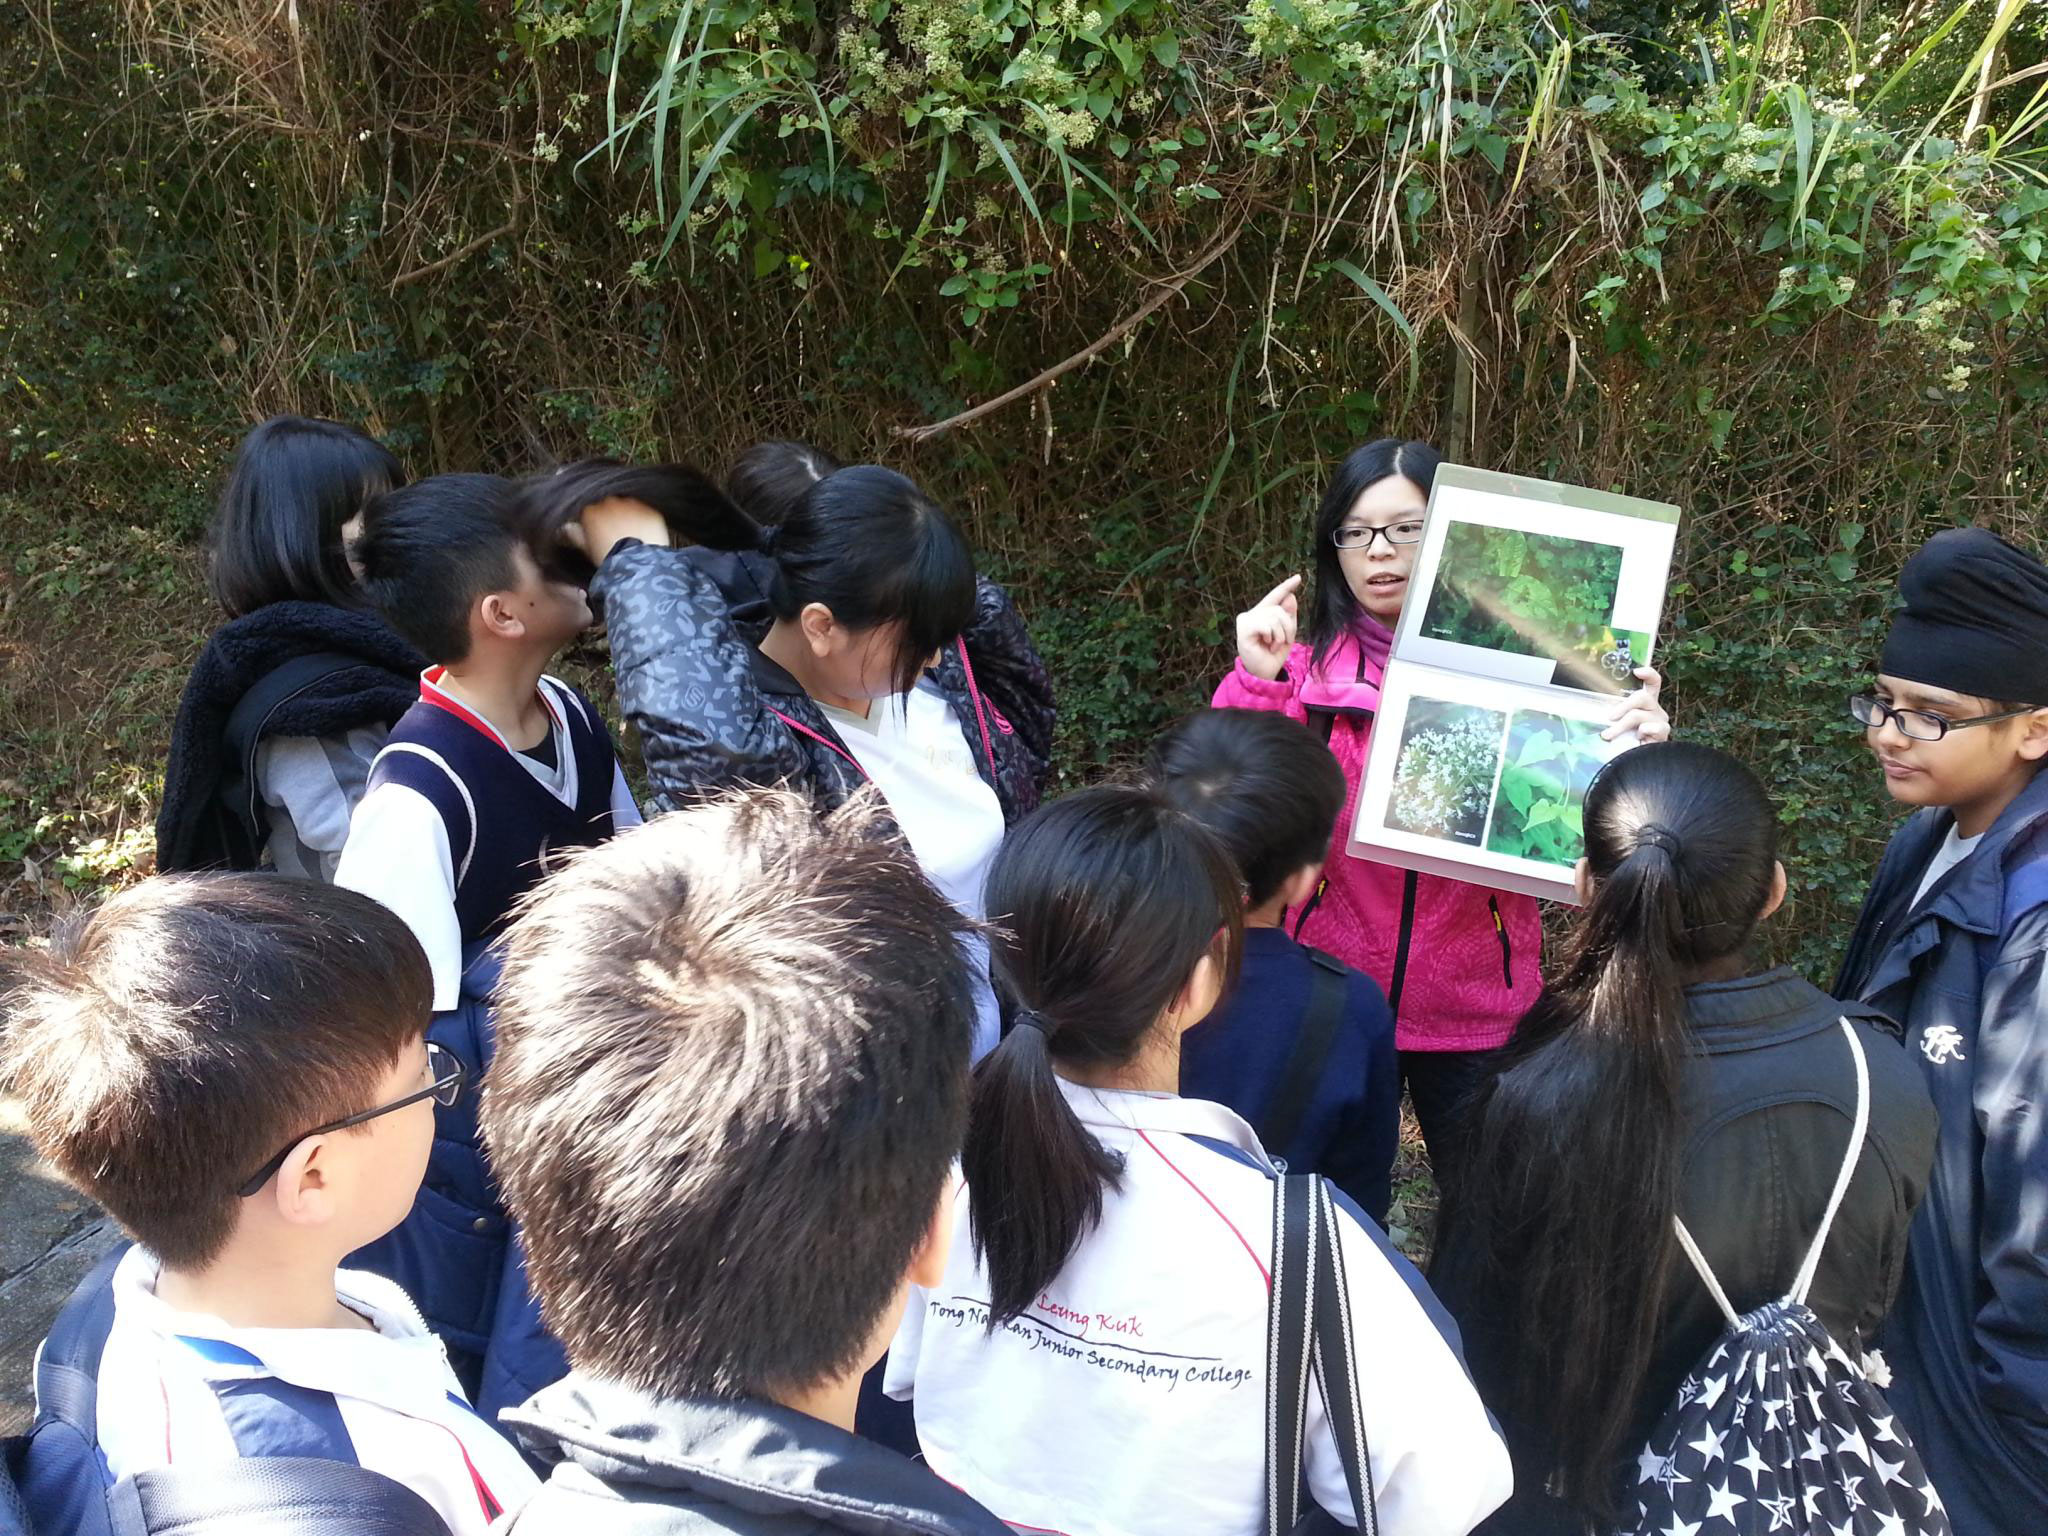 Students are paying attention to what the tour guide talking about a type of plant.